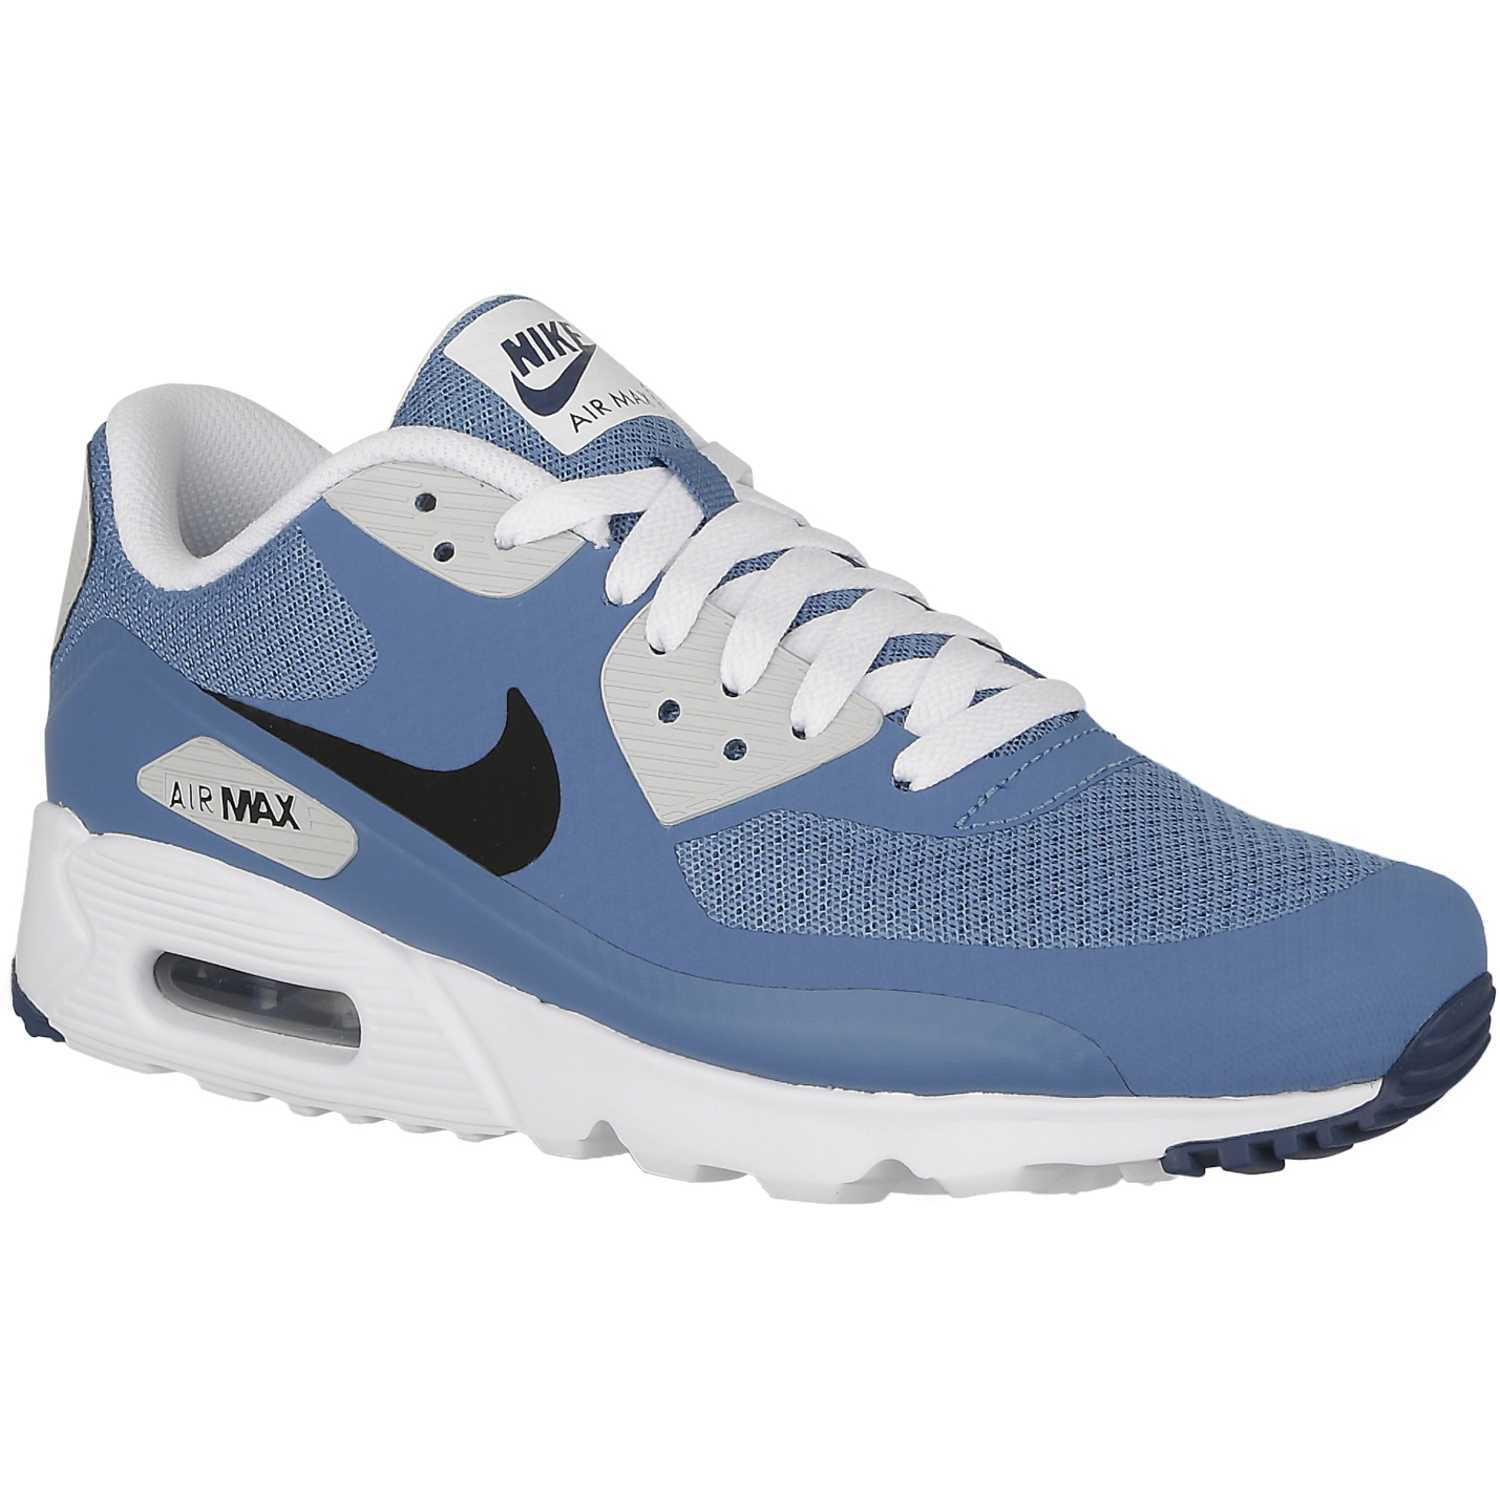 premium selection 82e6c 4fd02 ... australia zapatilla de hombre nike azul blanco air max 90 ultra  essential be7f5 50220